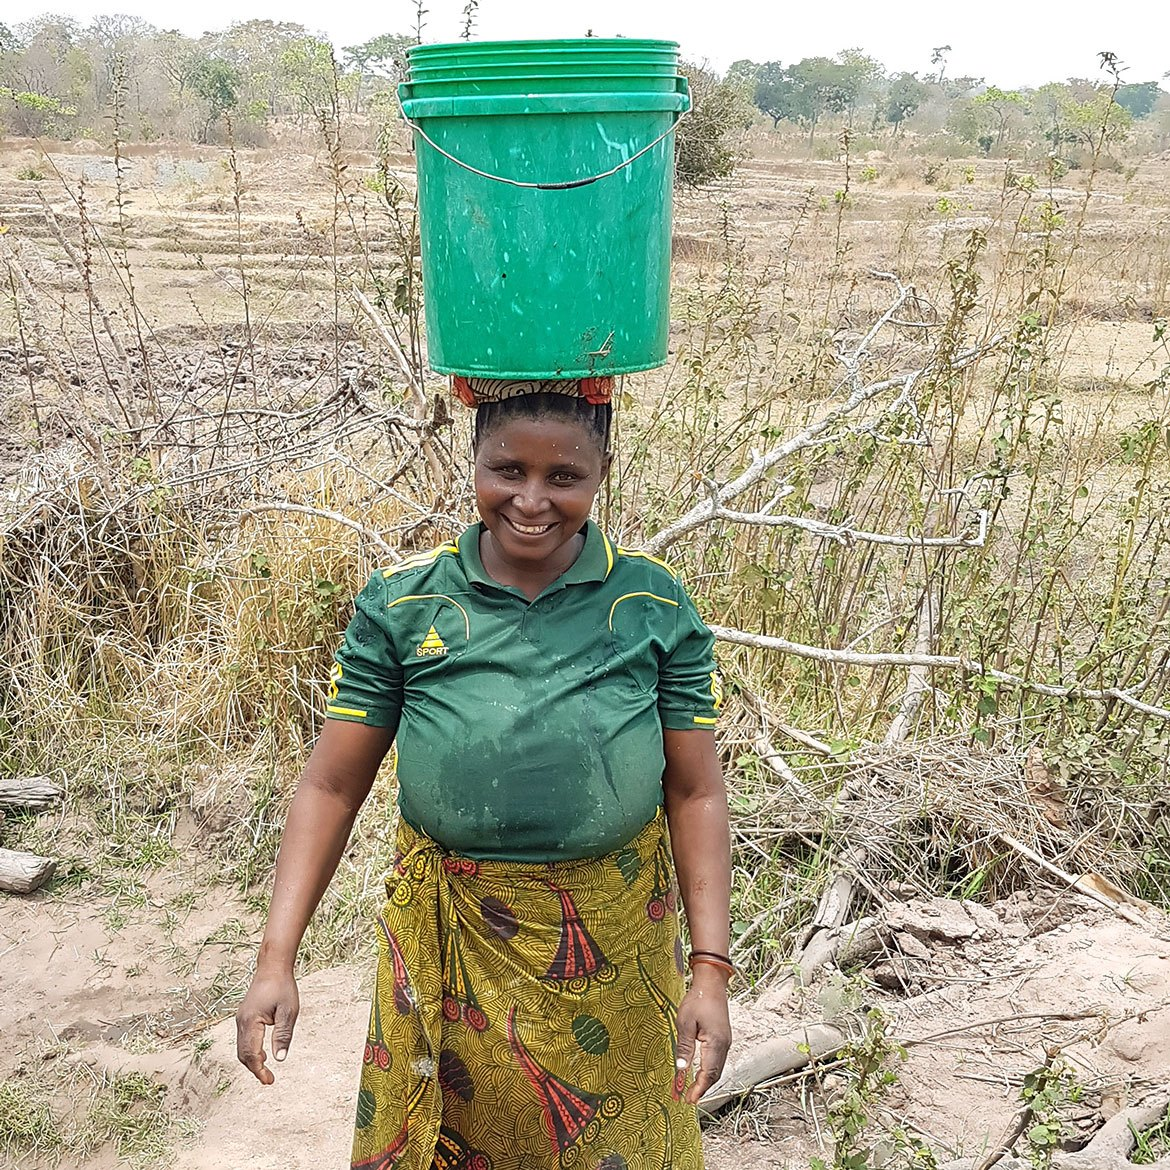 a05-woman-carrying-bucket-of-water-on-head